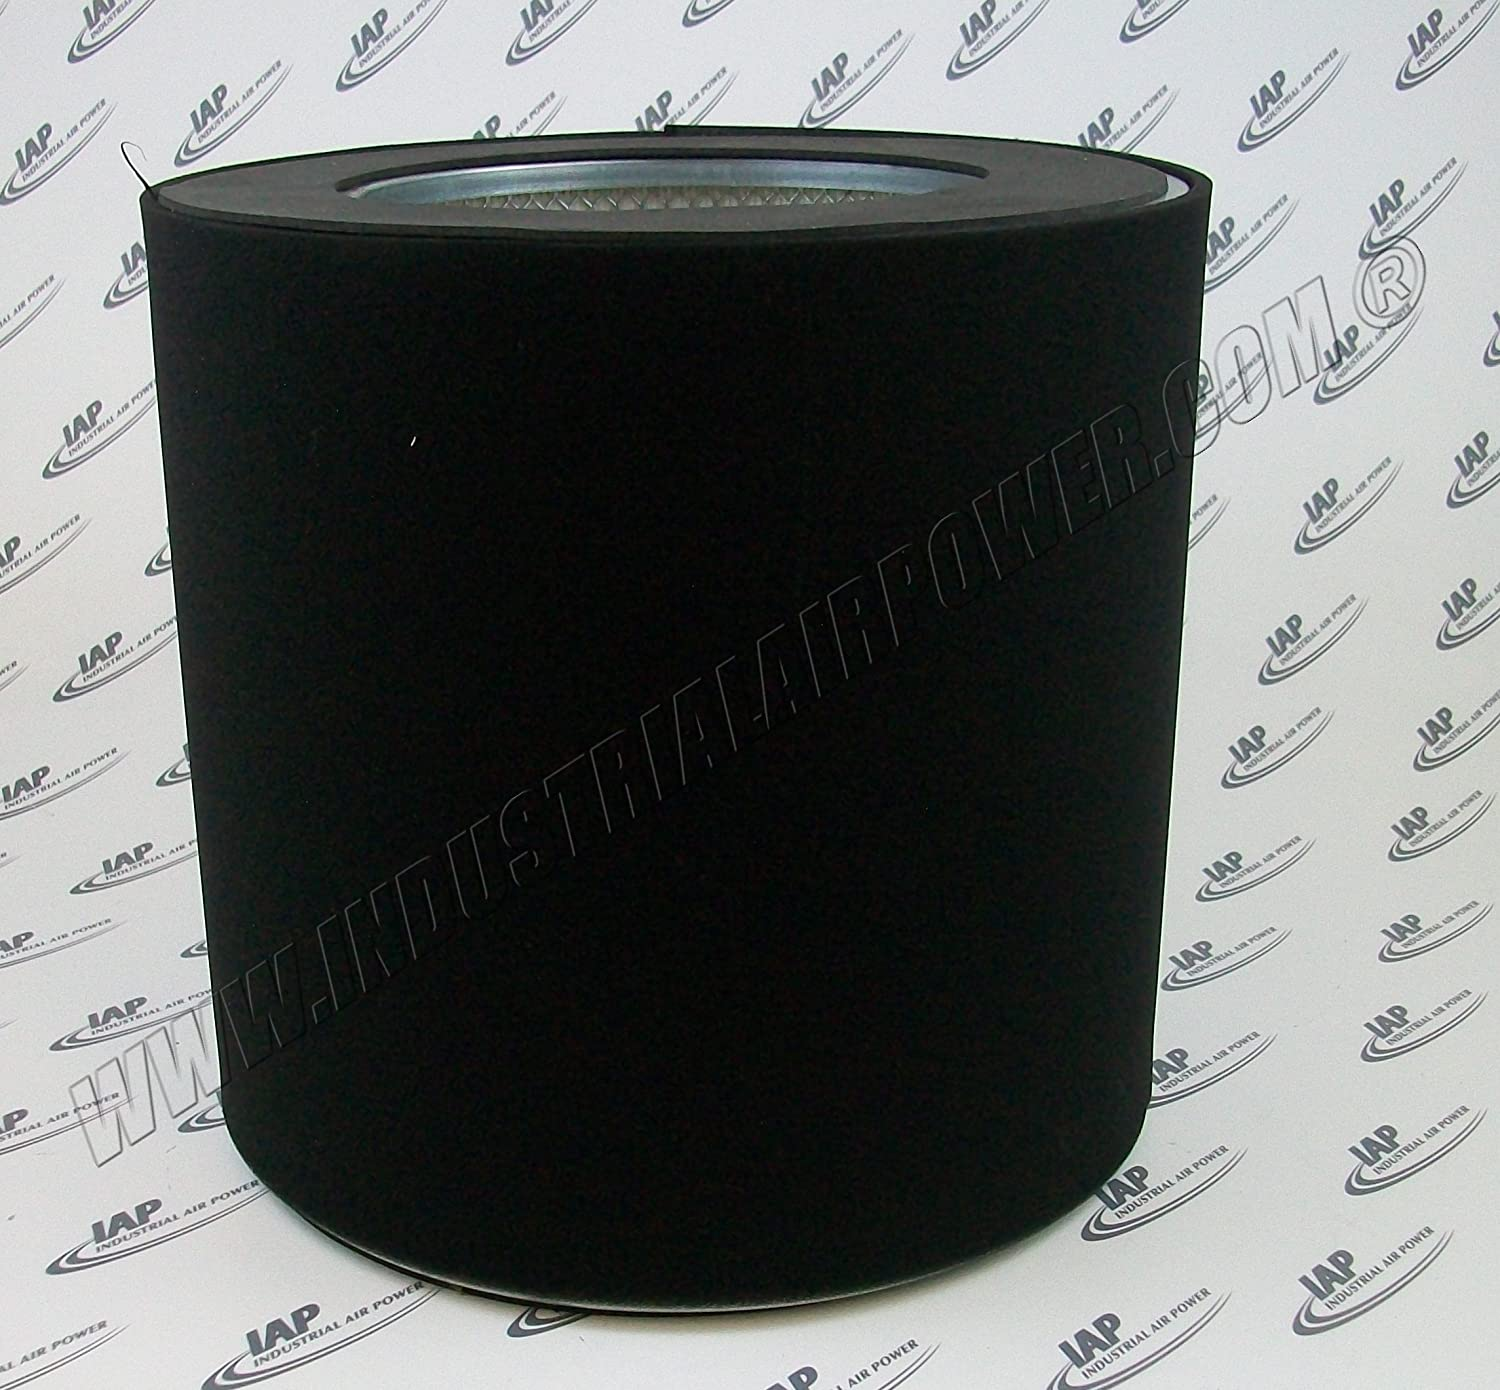 376P Air Filter Element Designed for use with Solberg compressors